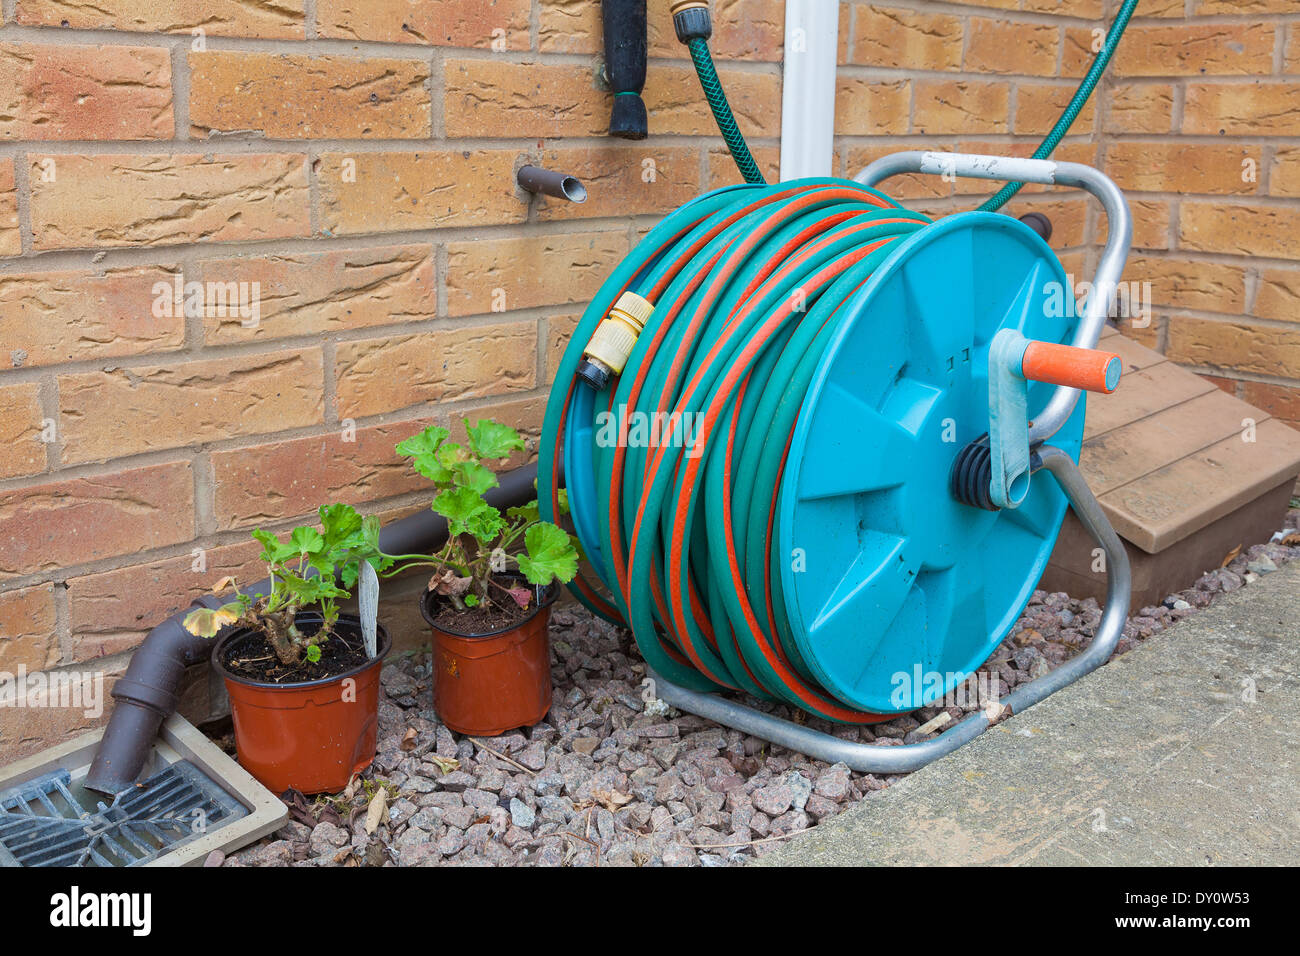 Garden Hose Reel Stock Photos & Garden Hose Reel Stock Images - Alamy